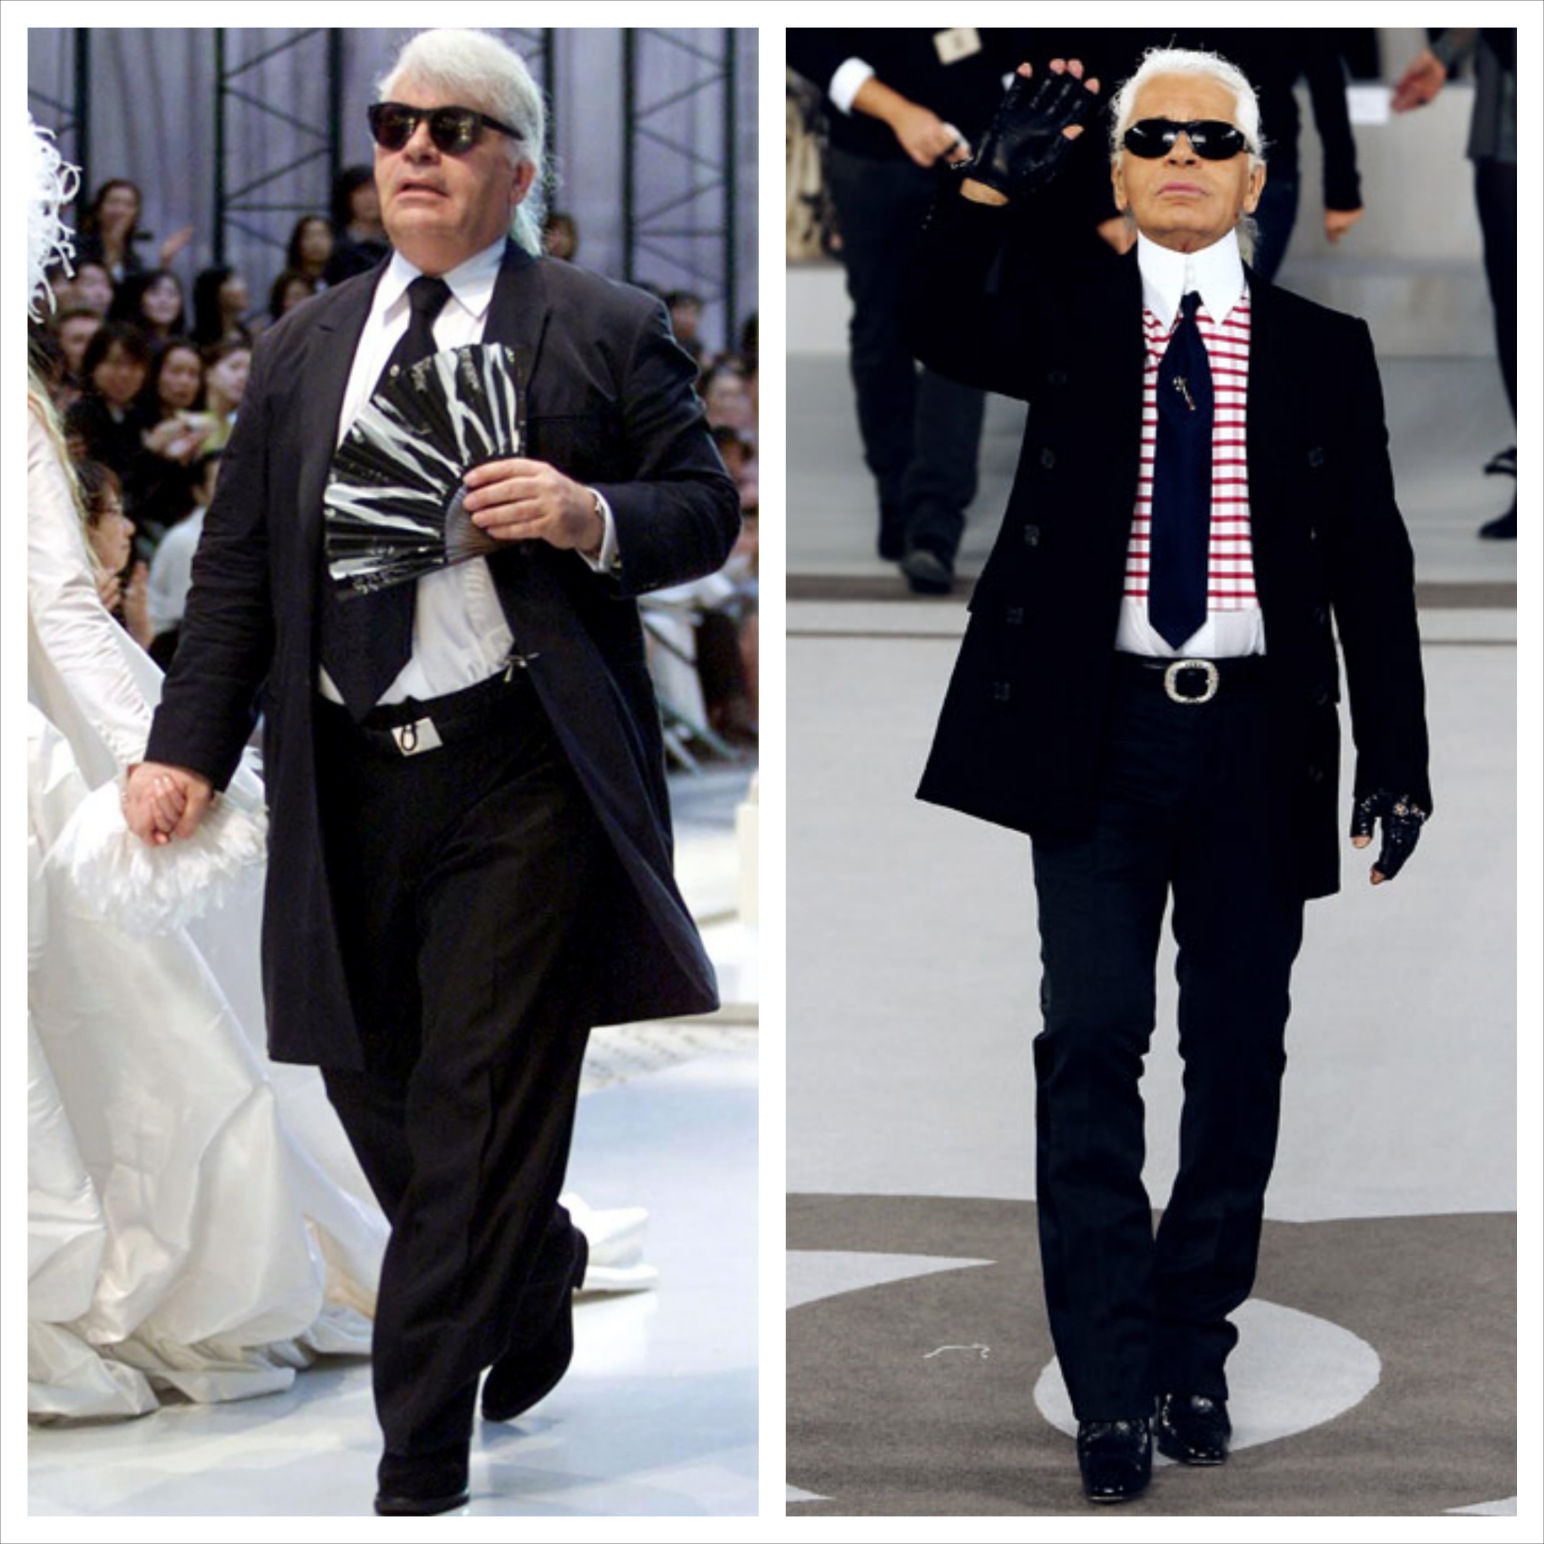 Fat Lagerfeld versus Think Lagerfeld